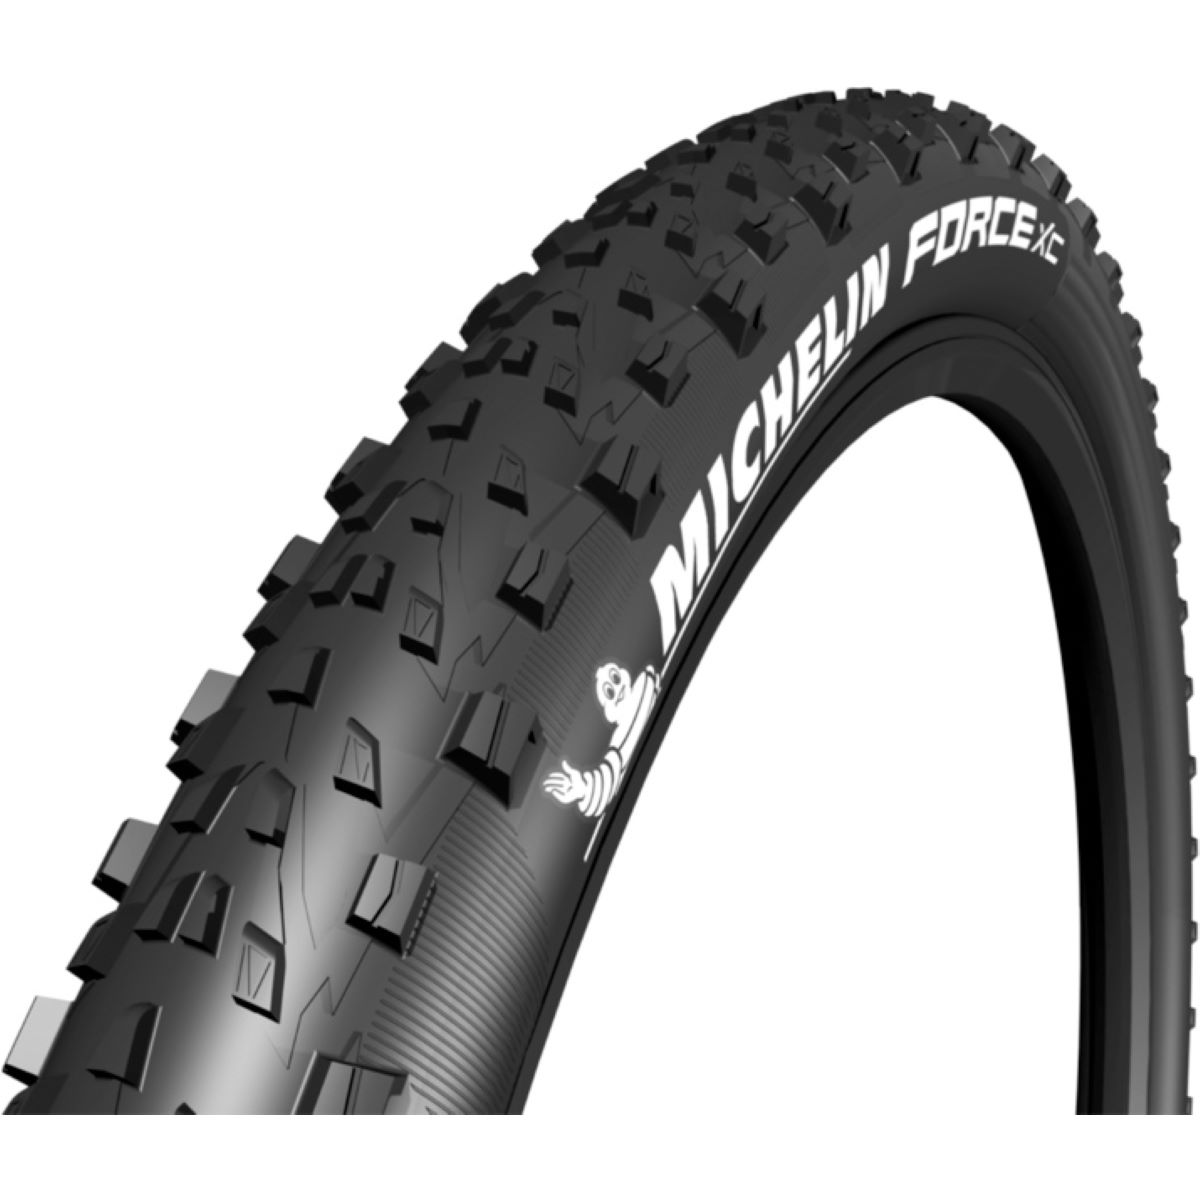 Pneu VTT Michelin Force XC Competition - 2.25' 27.5' Noir Pneus